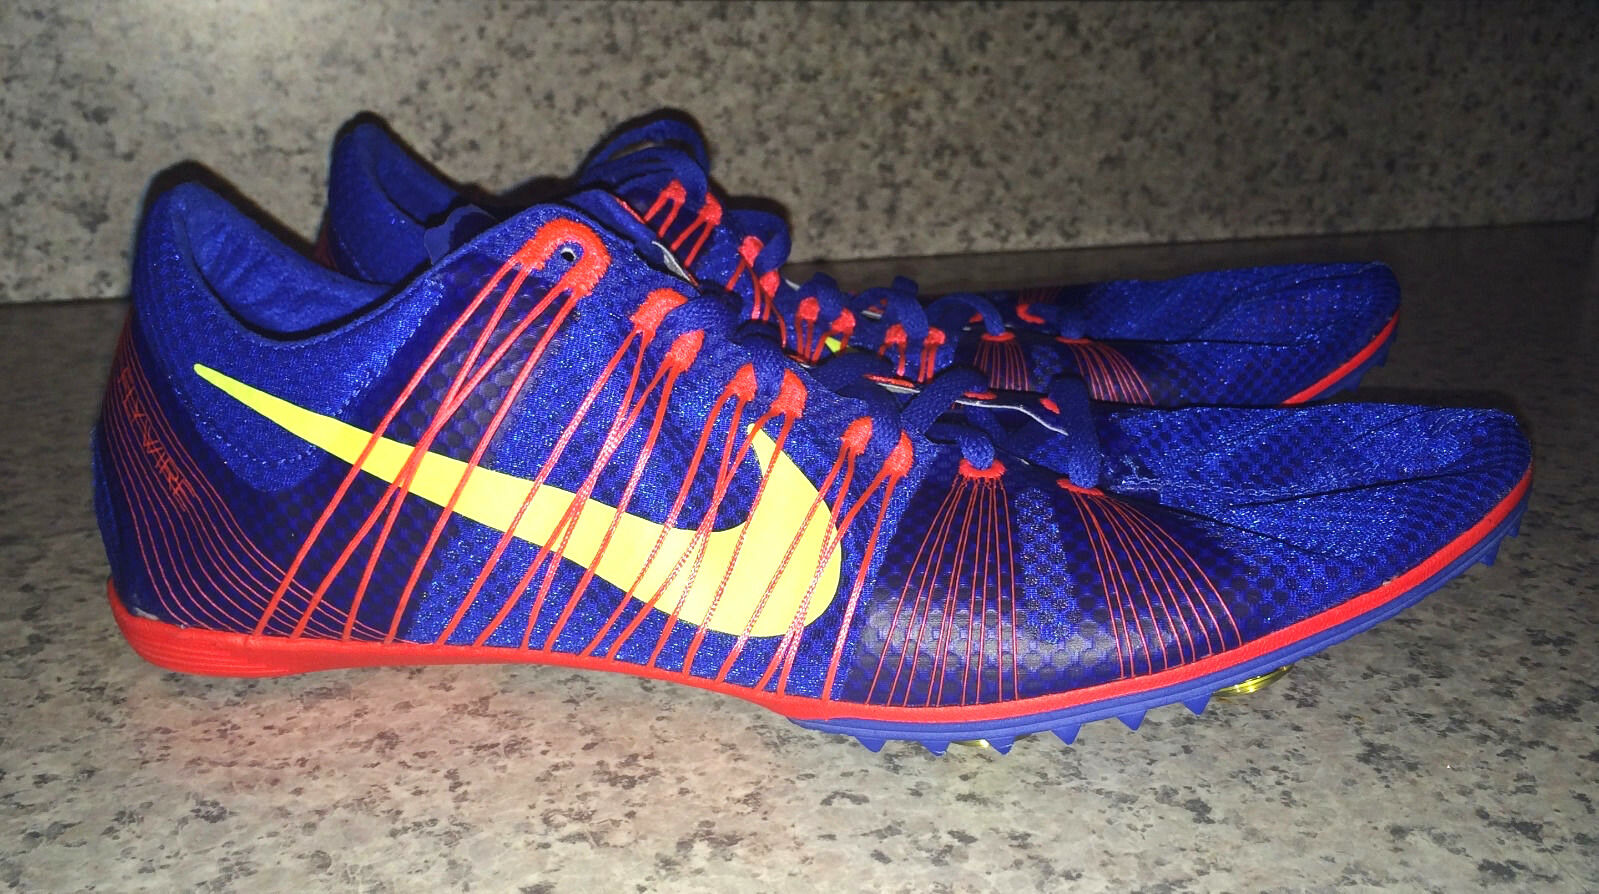 NIKE Zoom Victory 2 Royal bluee Red Mid Distance Track Spikes shoes NEW Mens 13